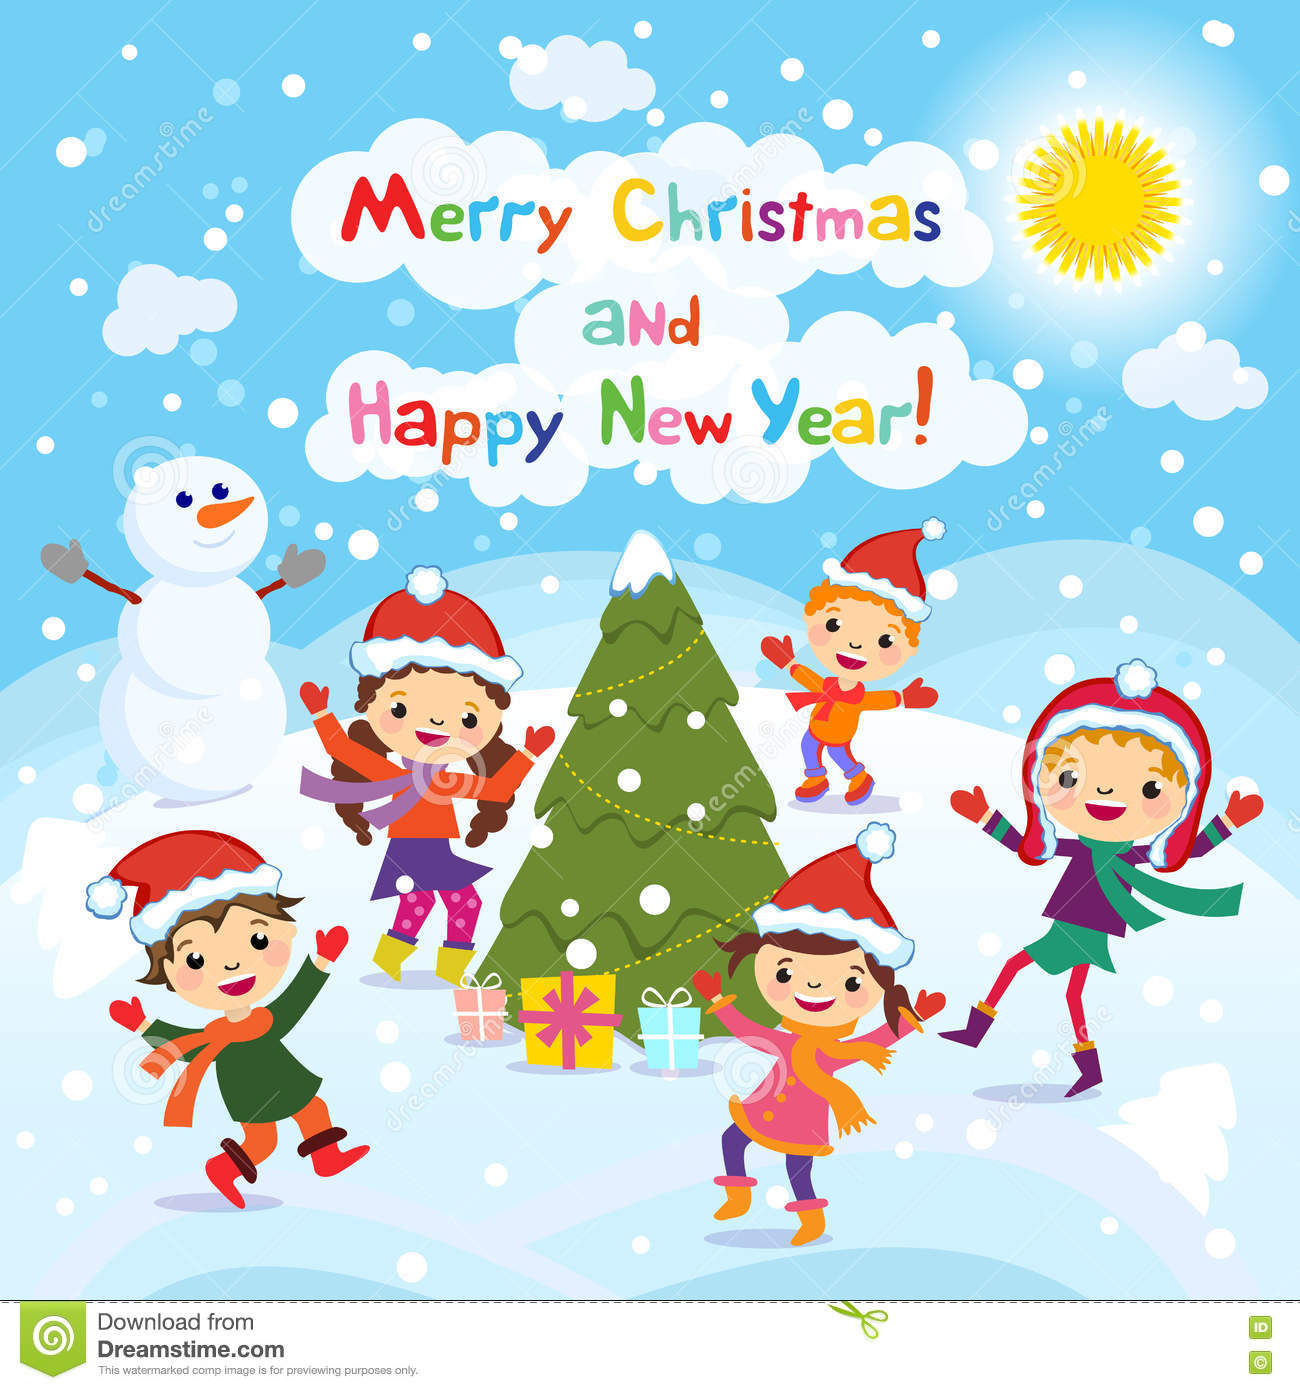 Merry Christmas And Happy New Year Winter Fun